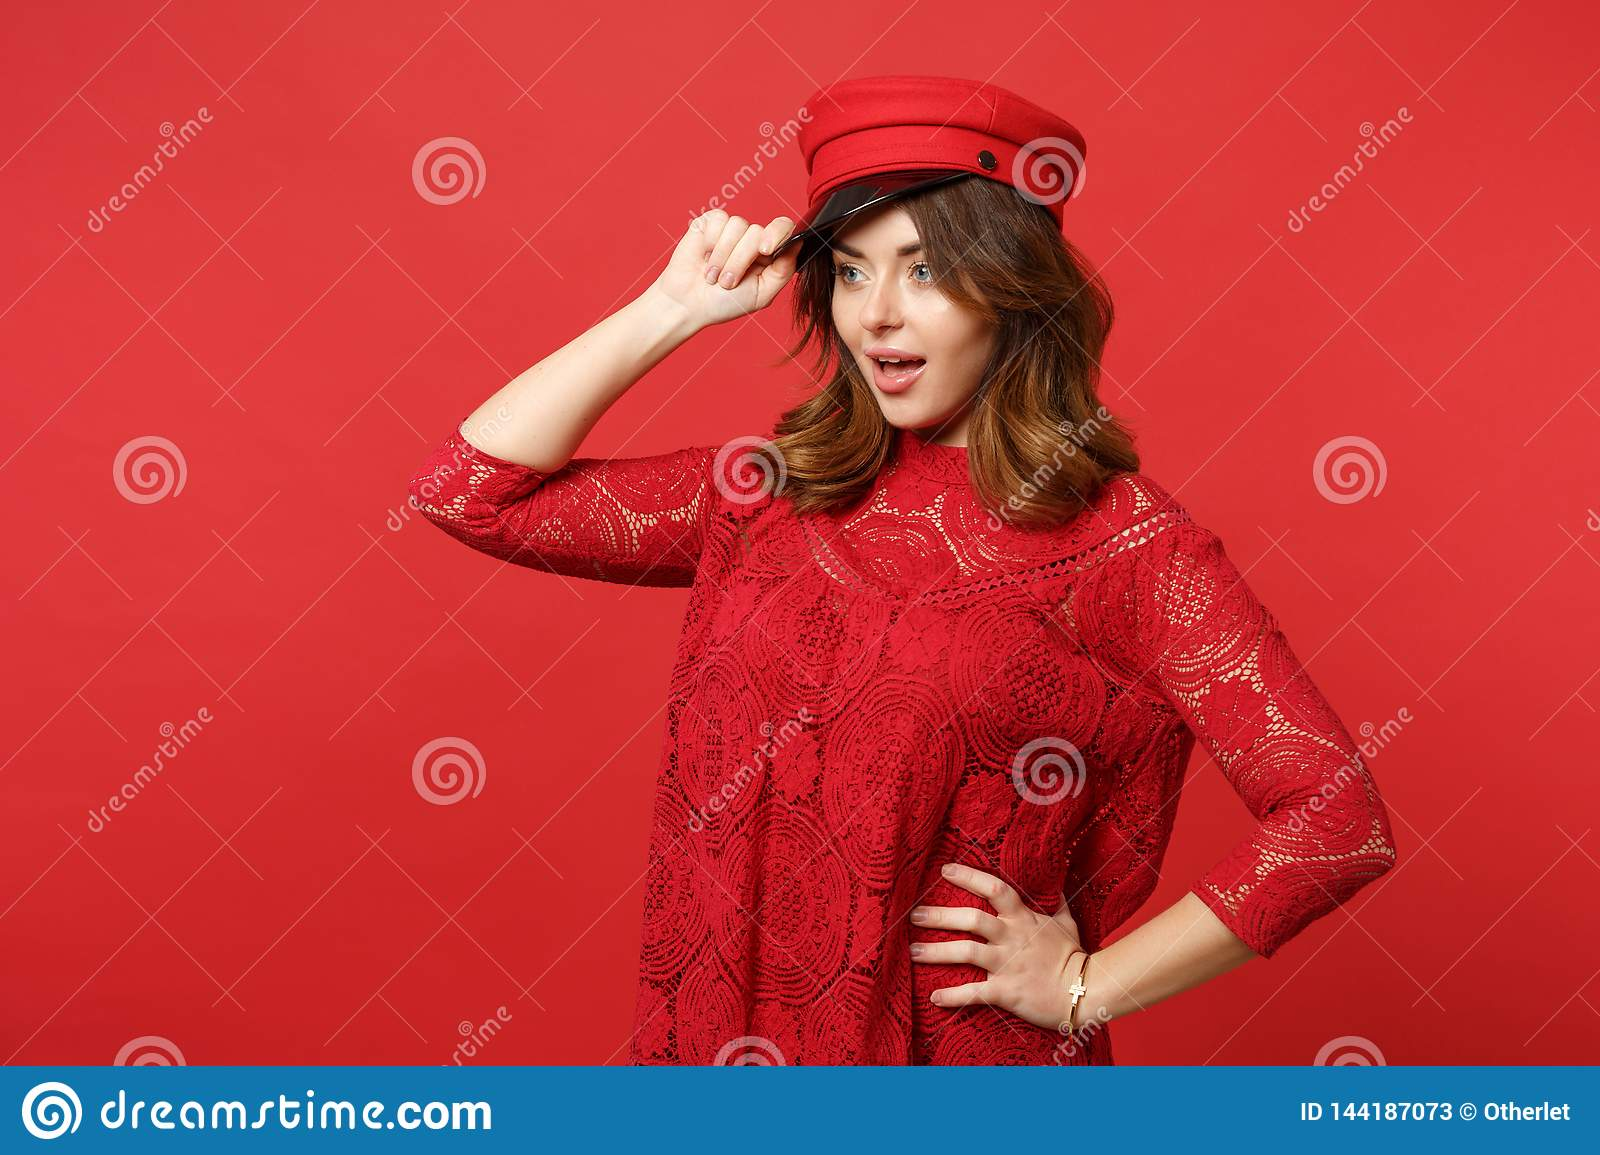 Portrait of excited young woman in lace dress holding cap, keeping mouth open looking aside isolated on bright red